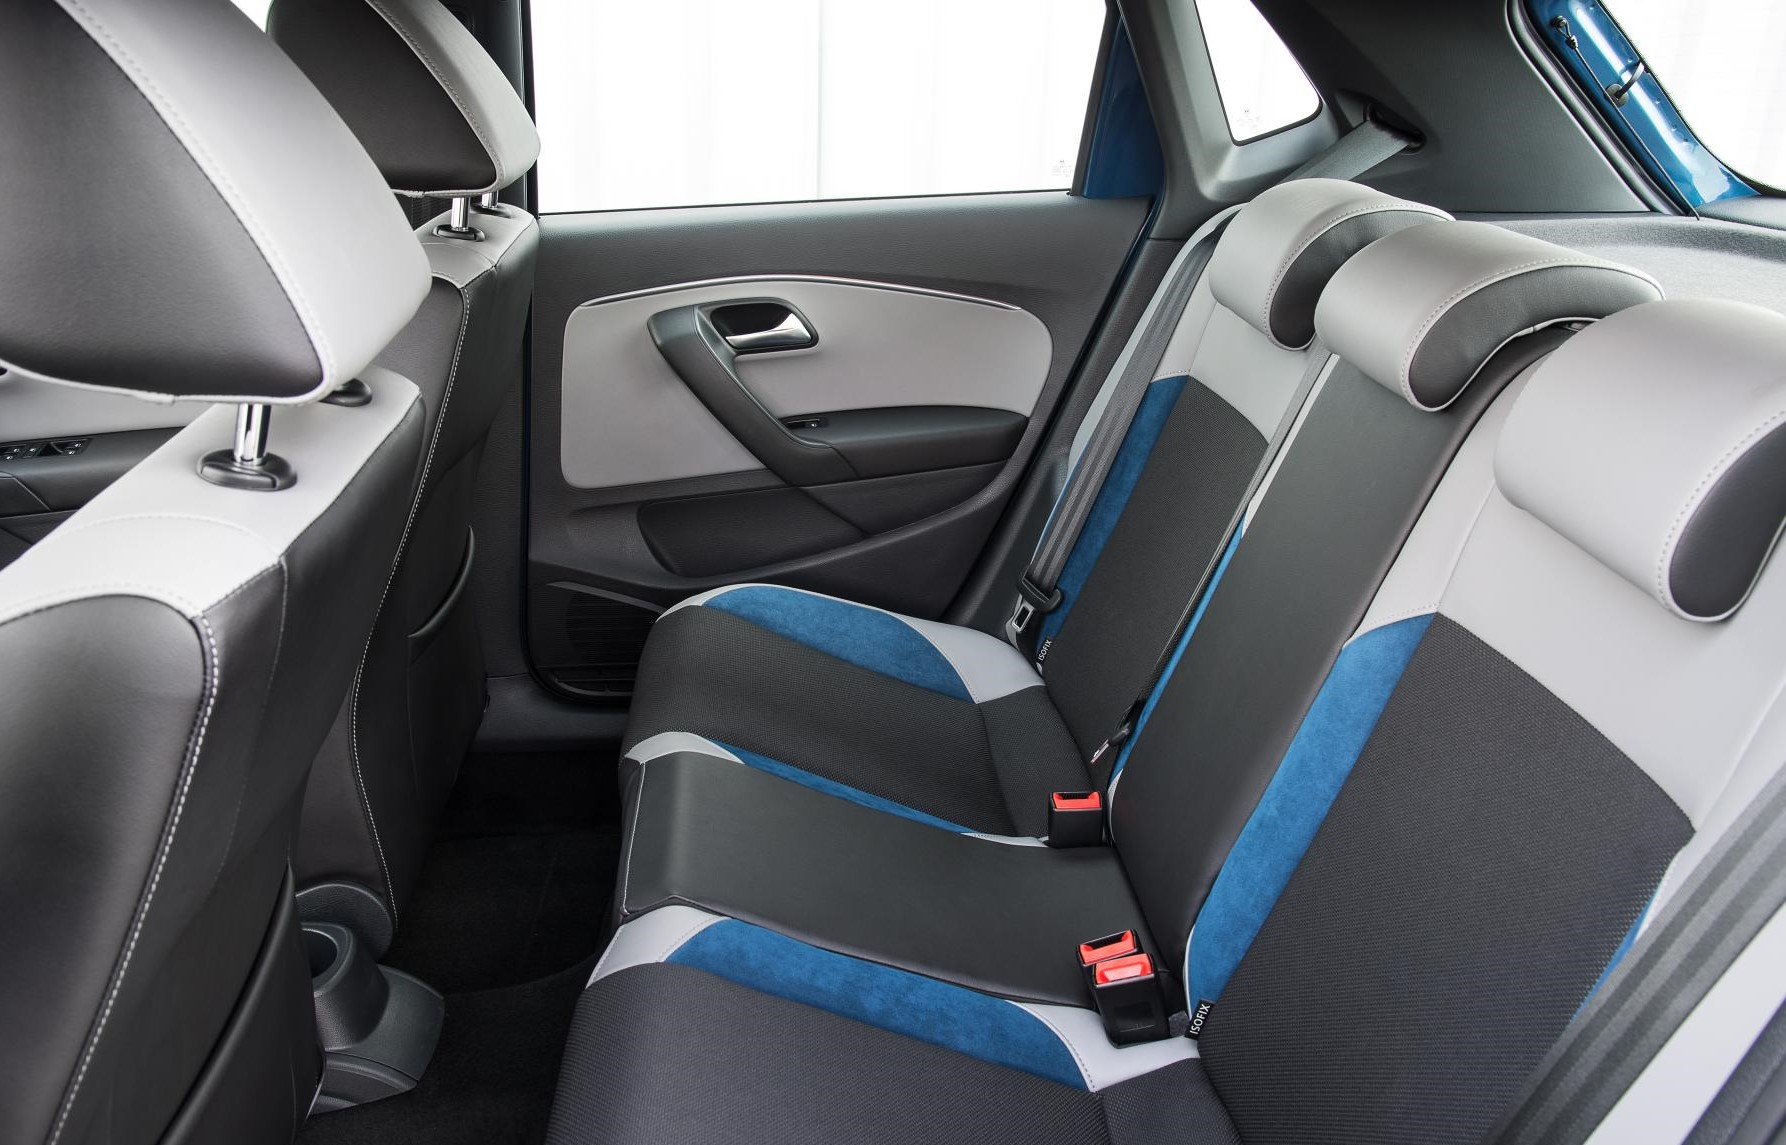 Volkswagen Polo interior back seats